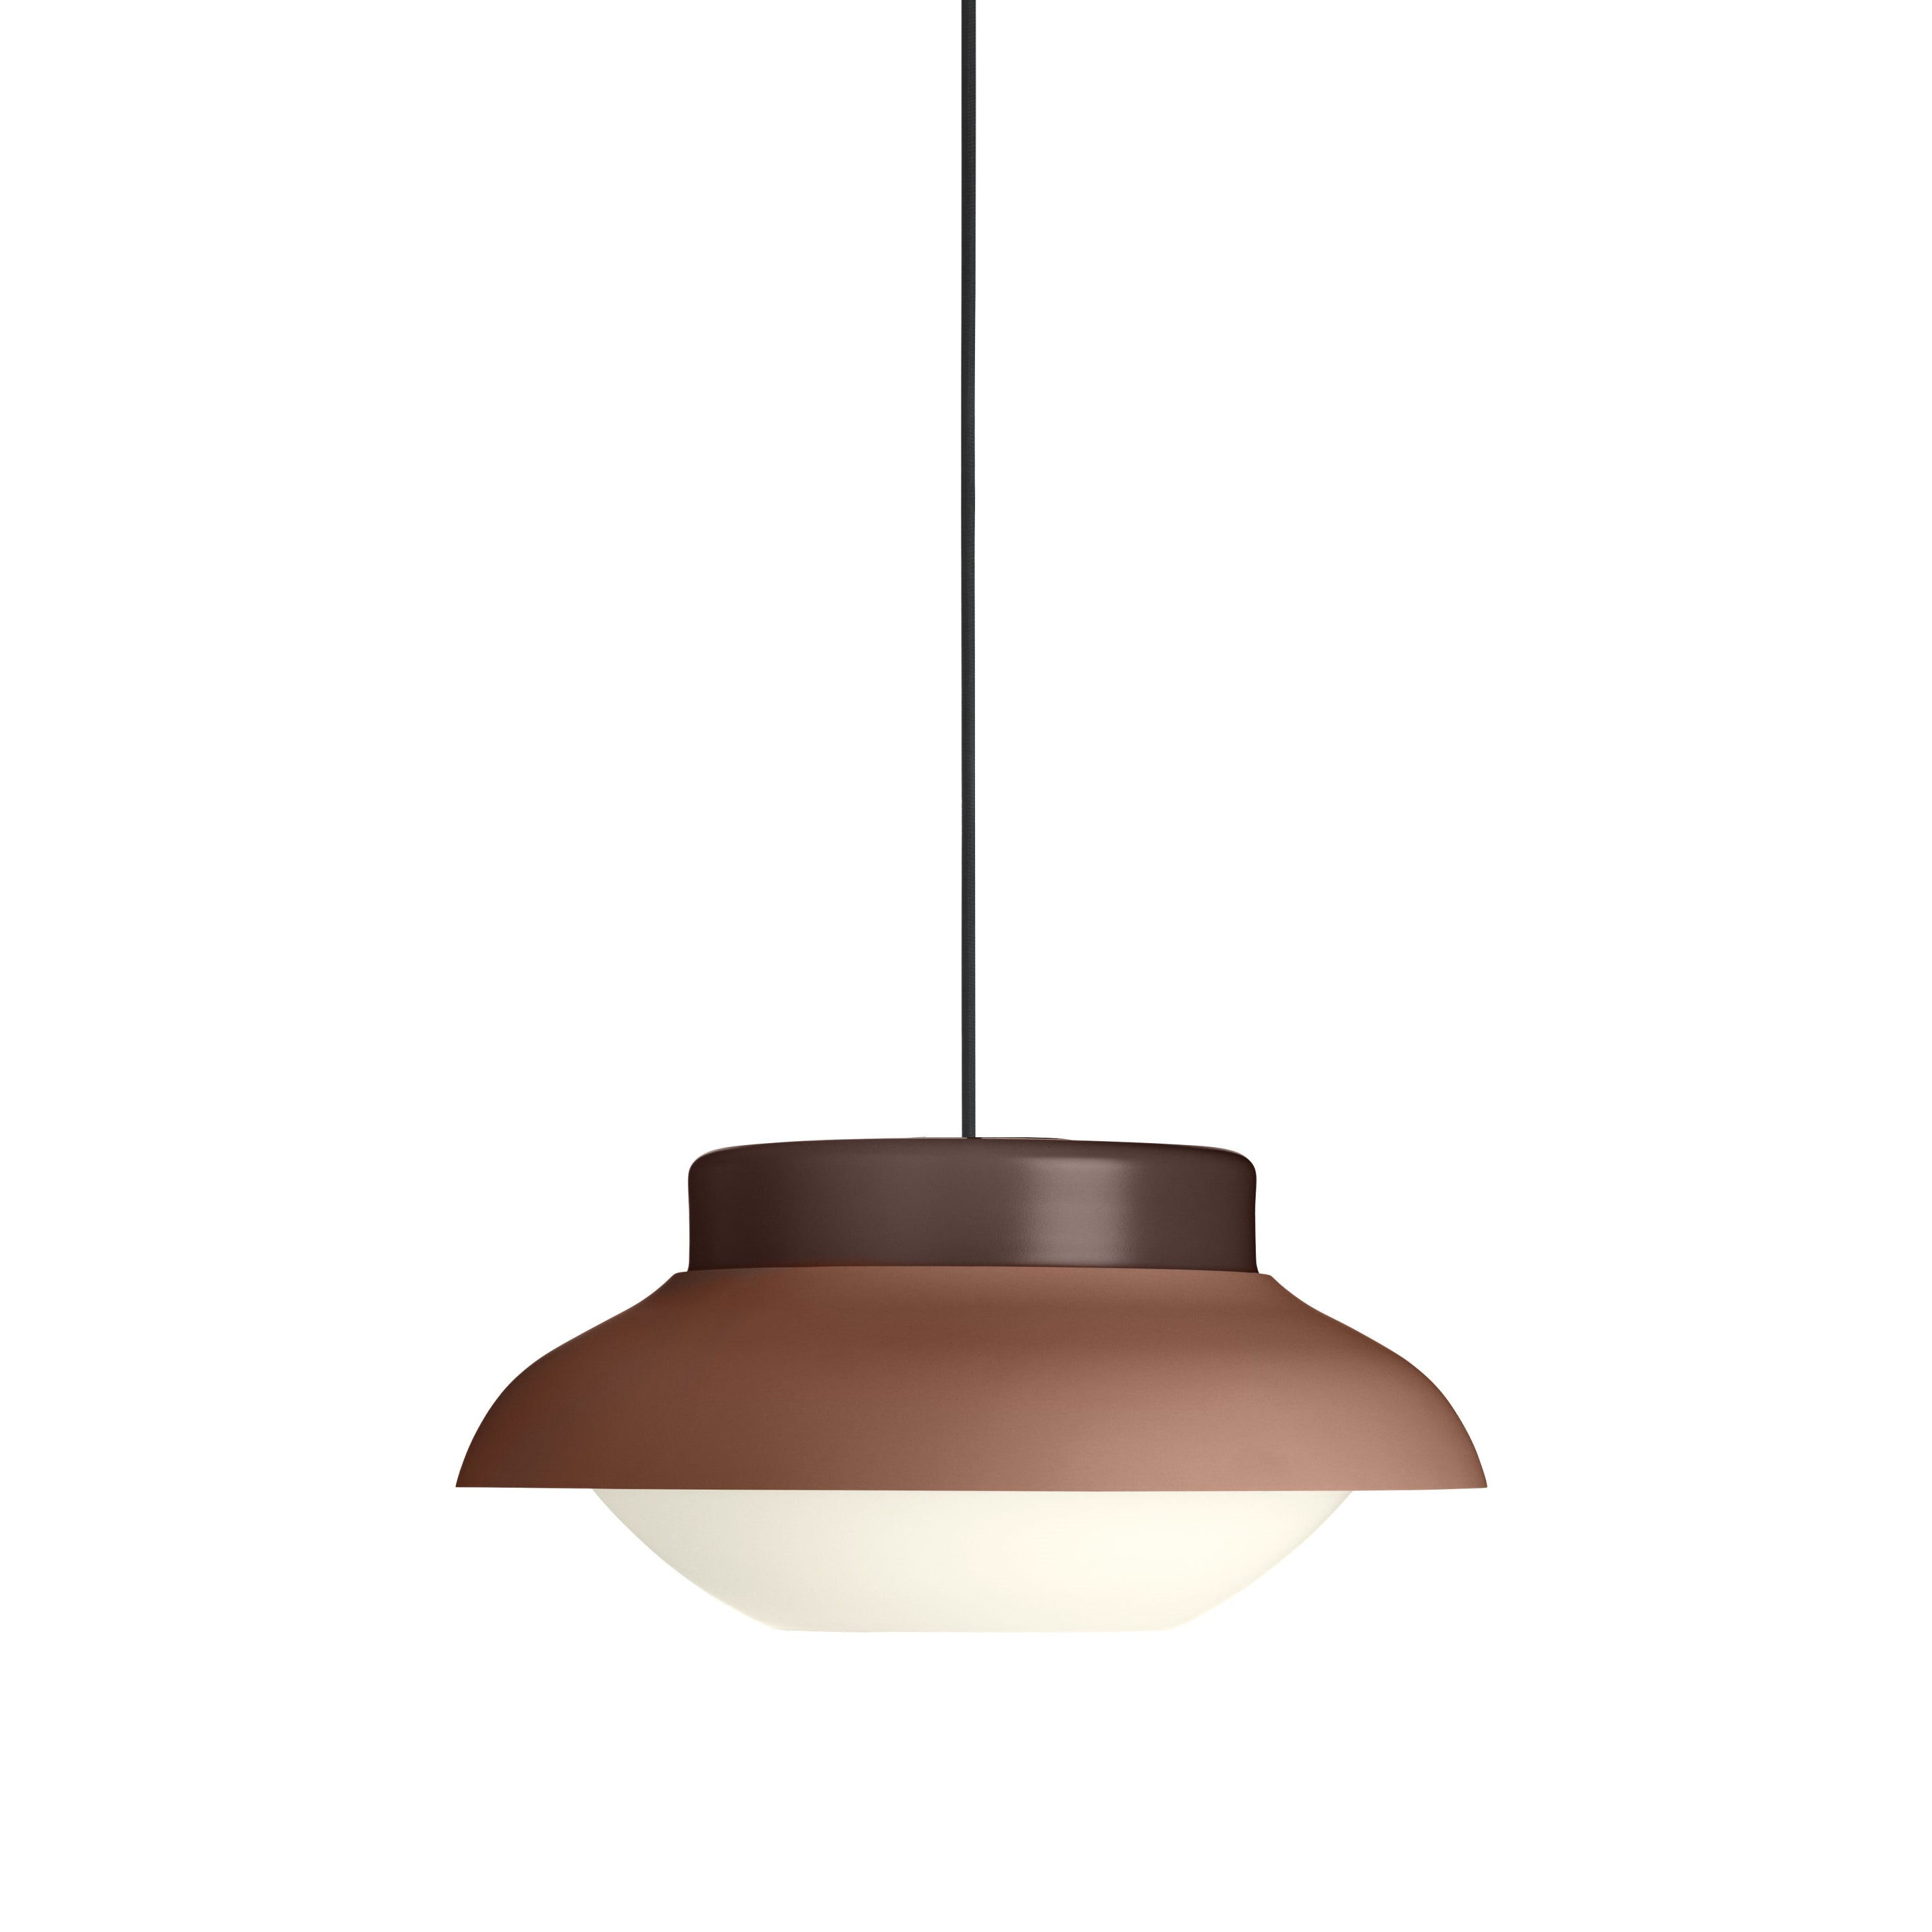 Collar Pendant Light: Large + Terracotta